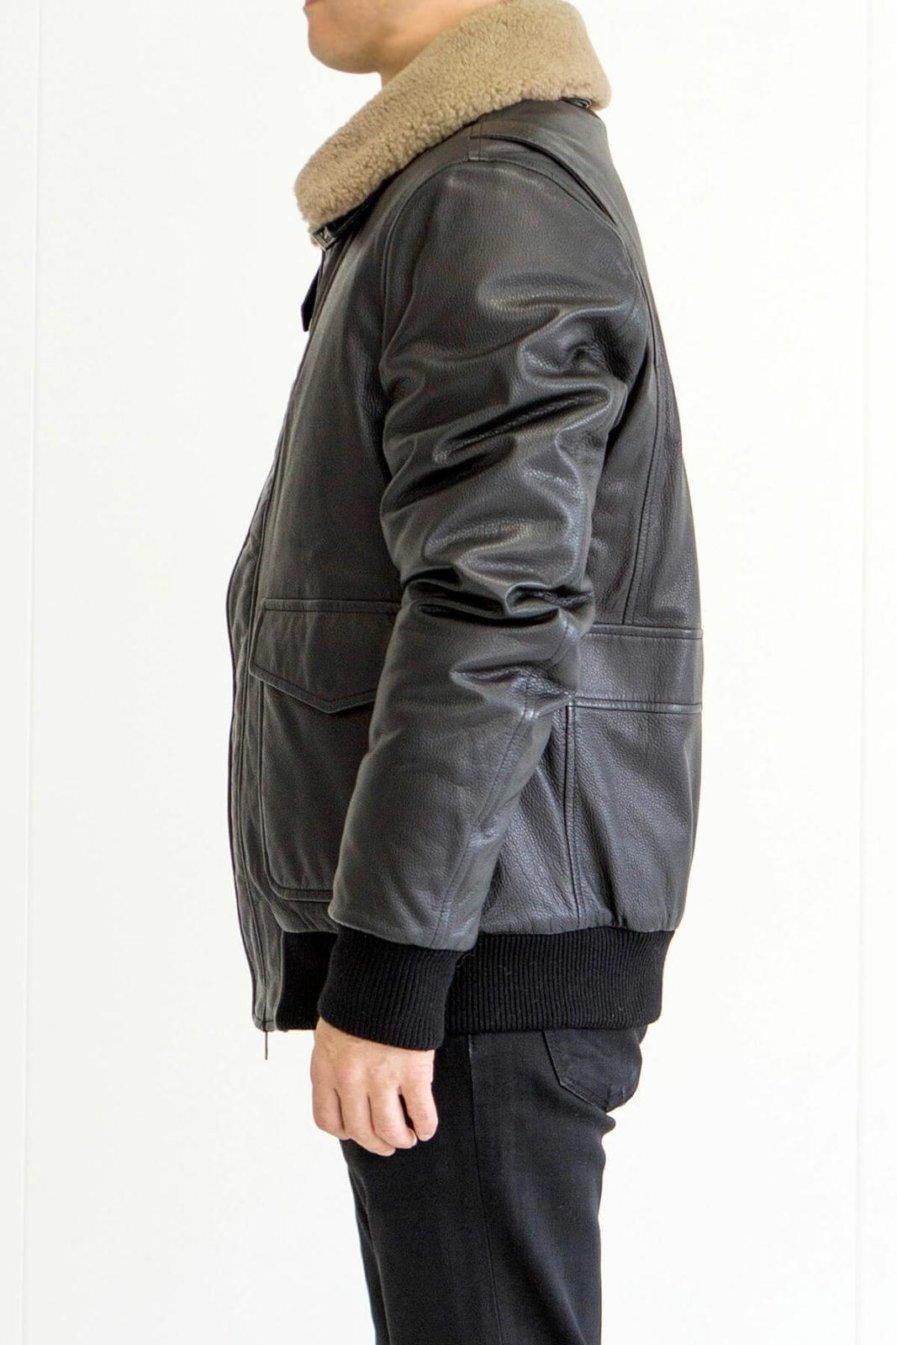 [:en]Sheep Skin Bomber Jacket With Shealing Collar[:ja]シープジャケット[:]